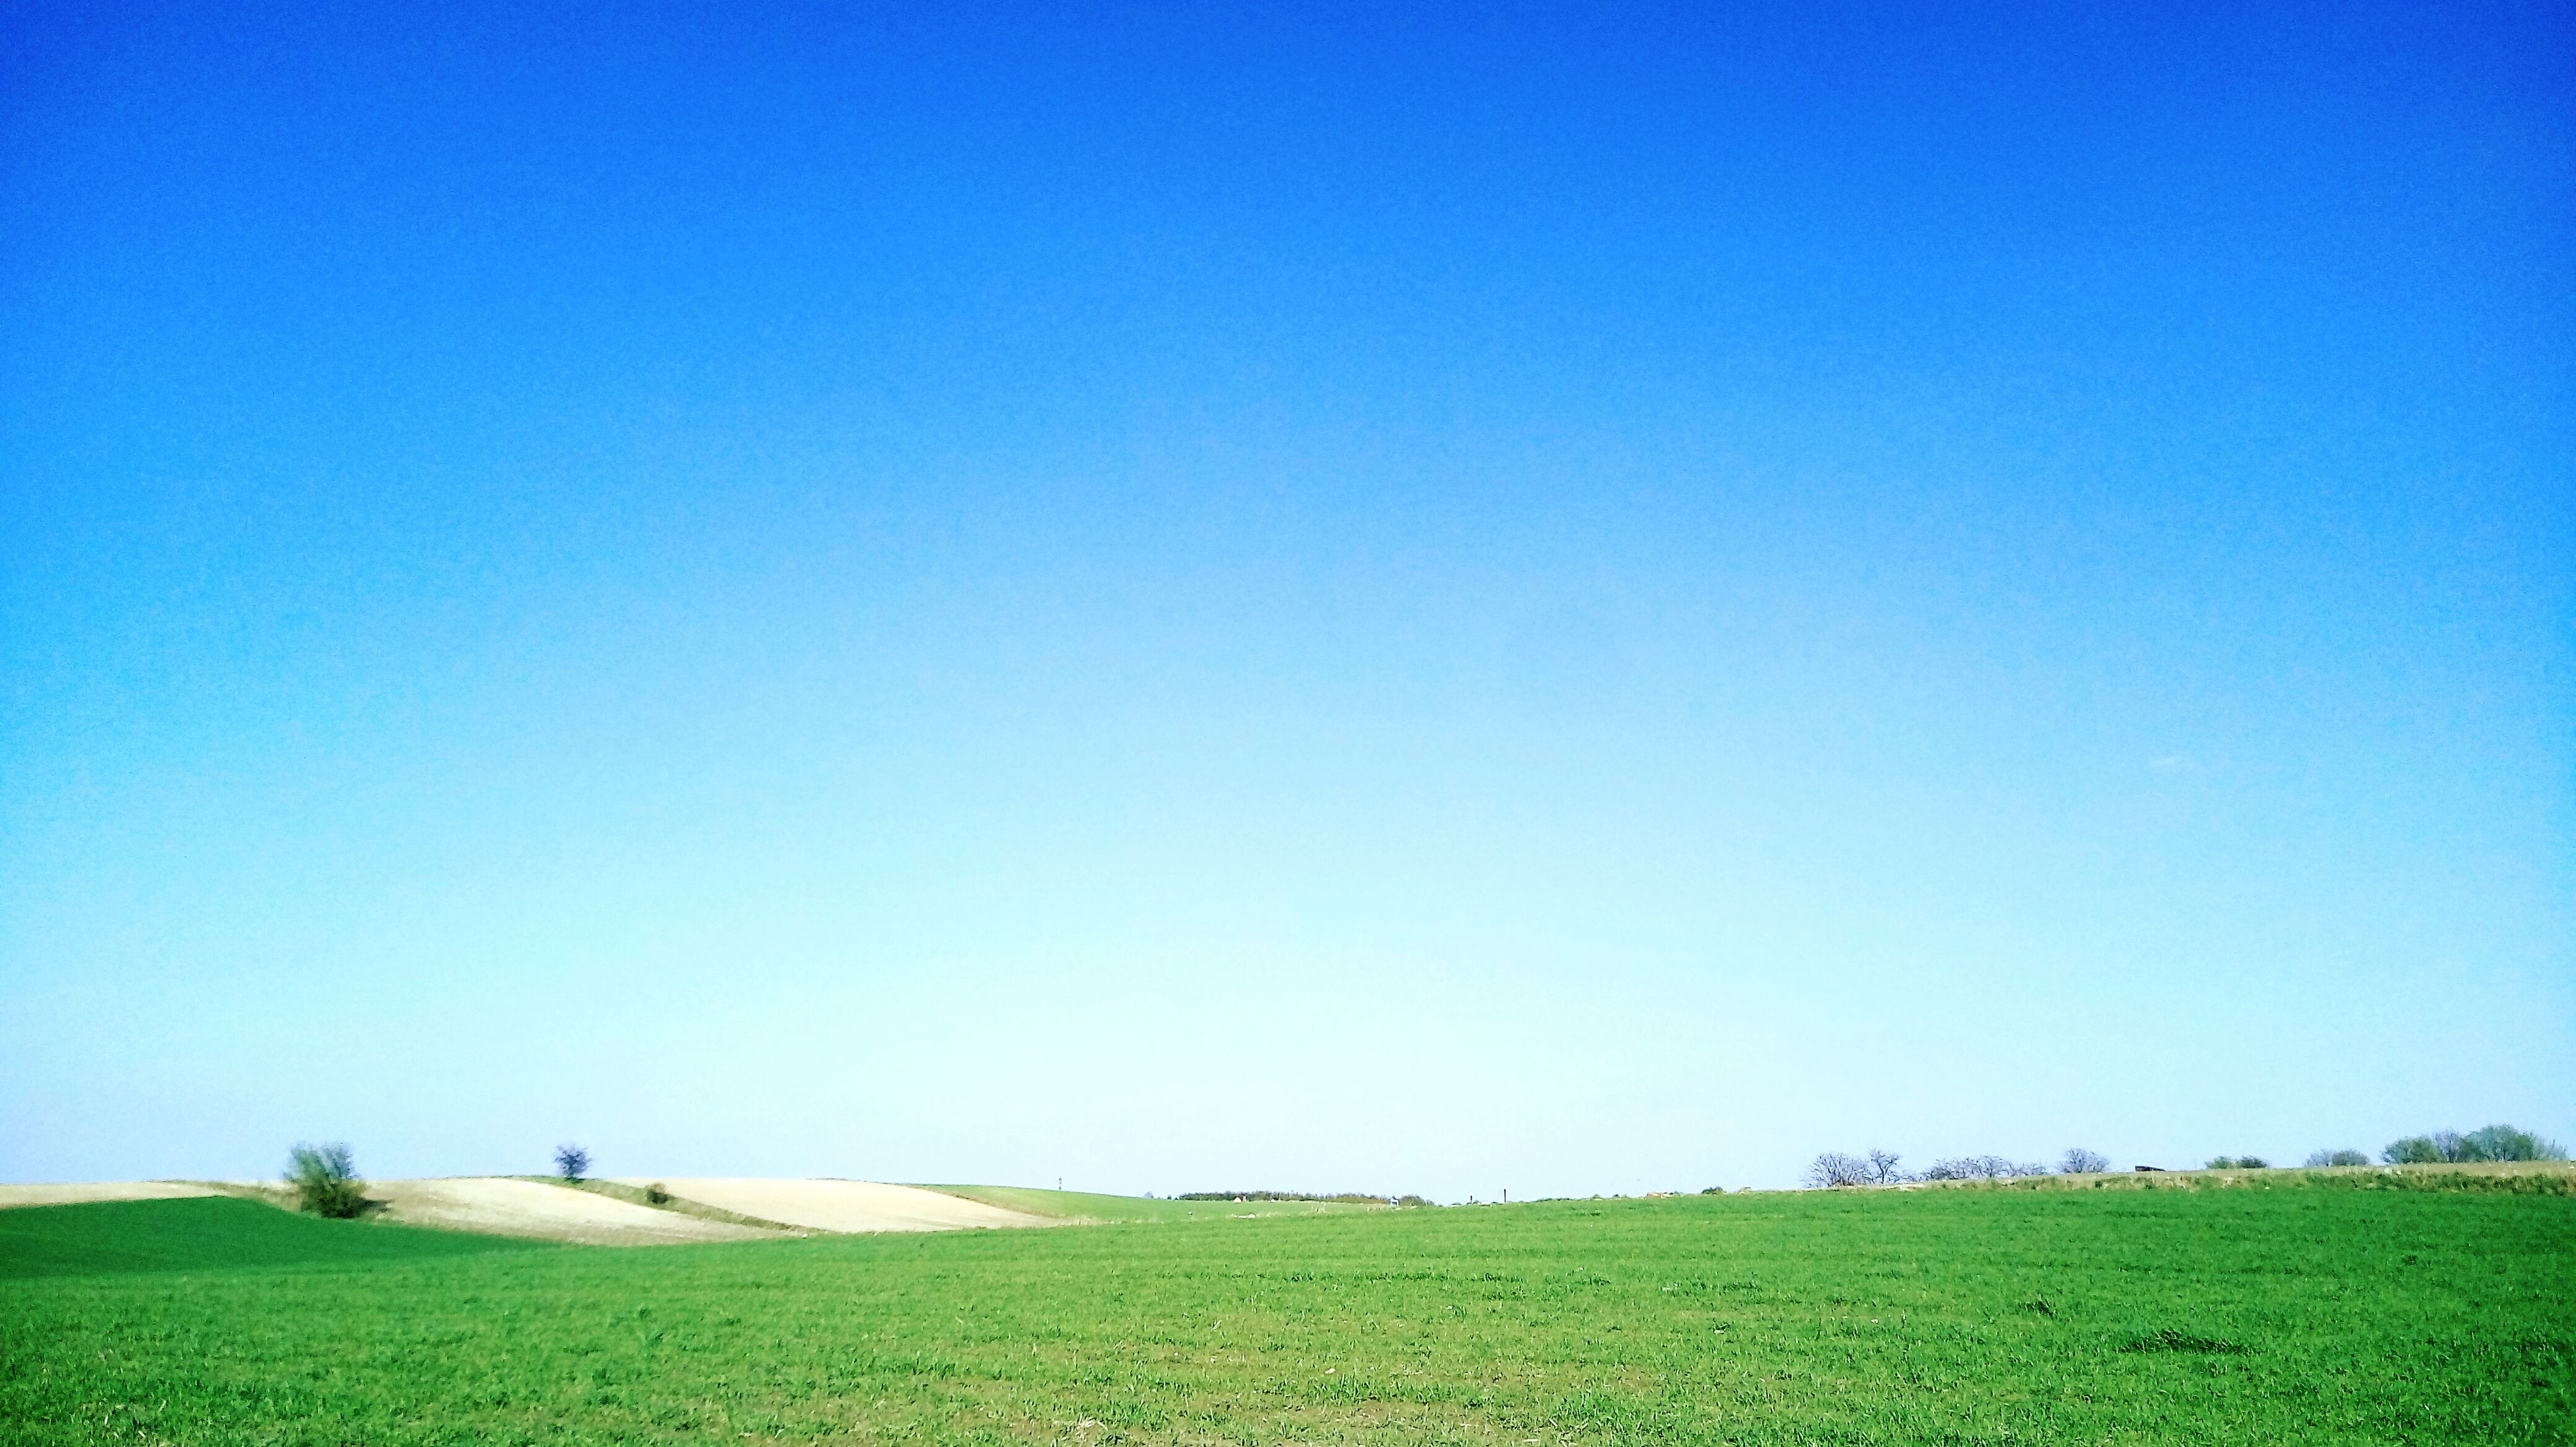 blue, clear sky, grass, sky, field, nature, tranquil scene, tranquility, outdoors, day, landscape, beauty in nature, scenics, people, mammal